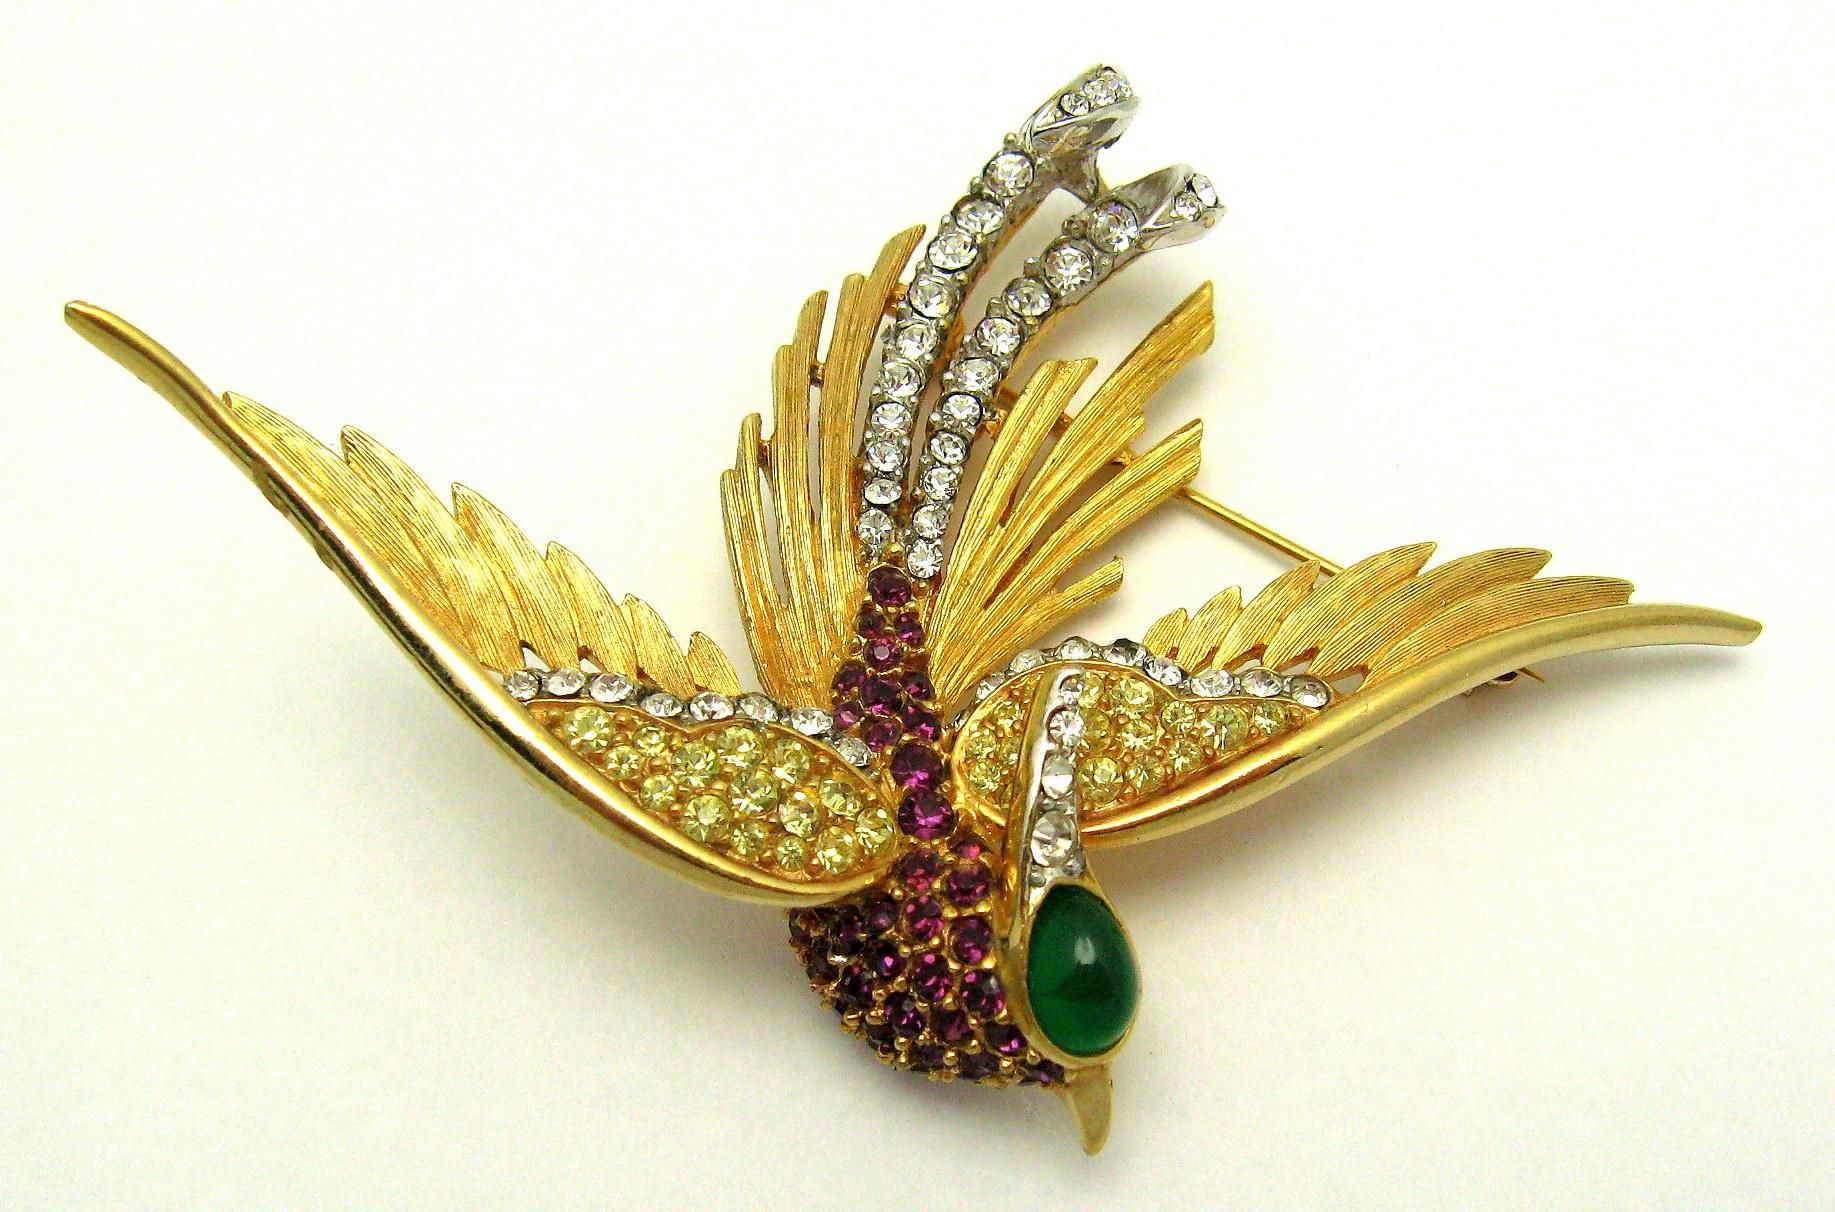 7b3d343b0a224 Vintage BOUCHER Rare and Large Bird Brooch 18k Gold Plated Crystal ...